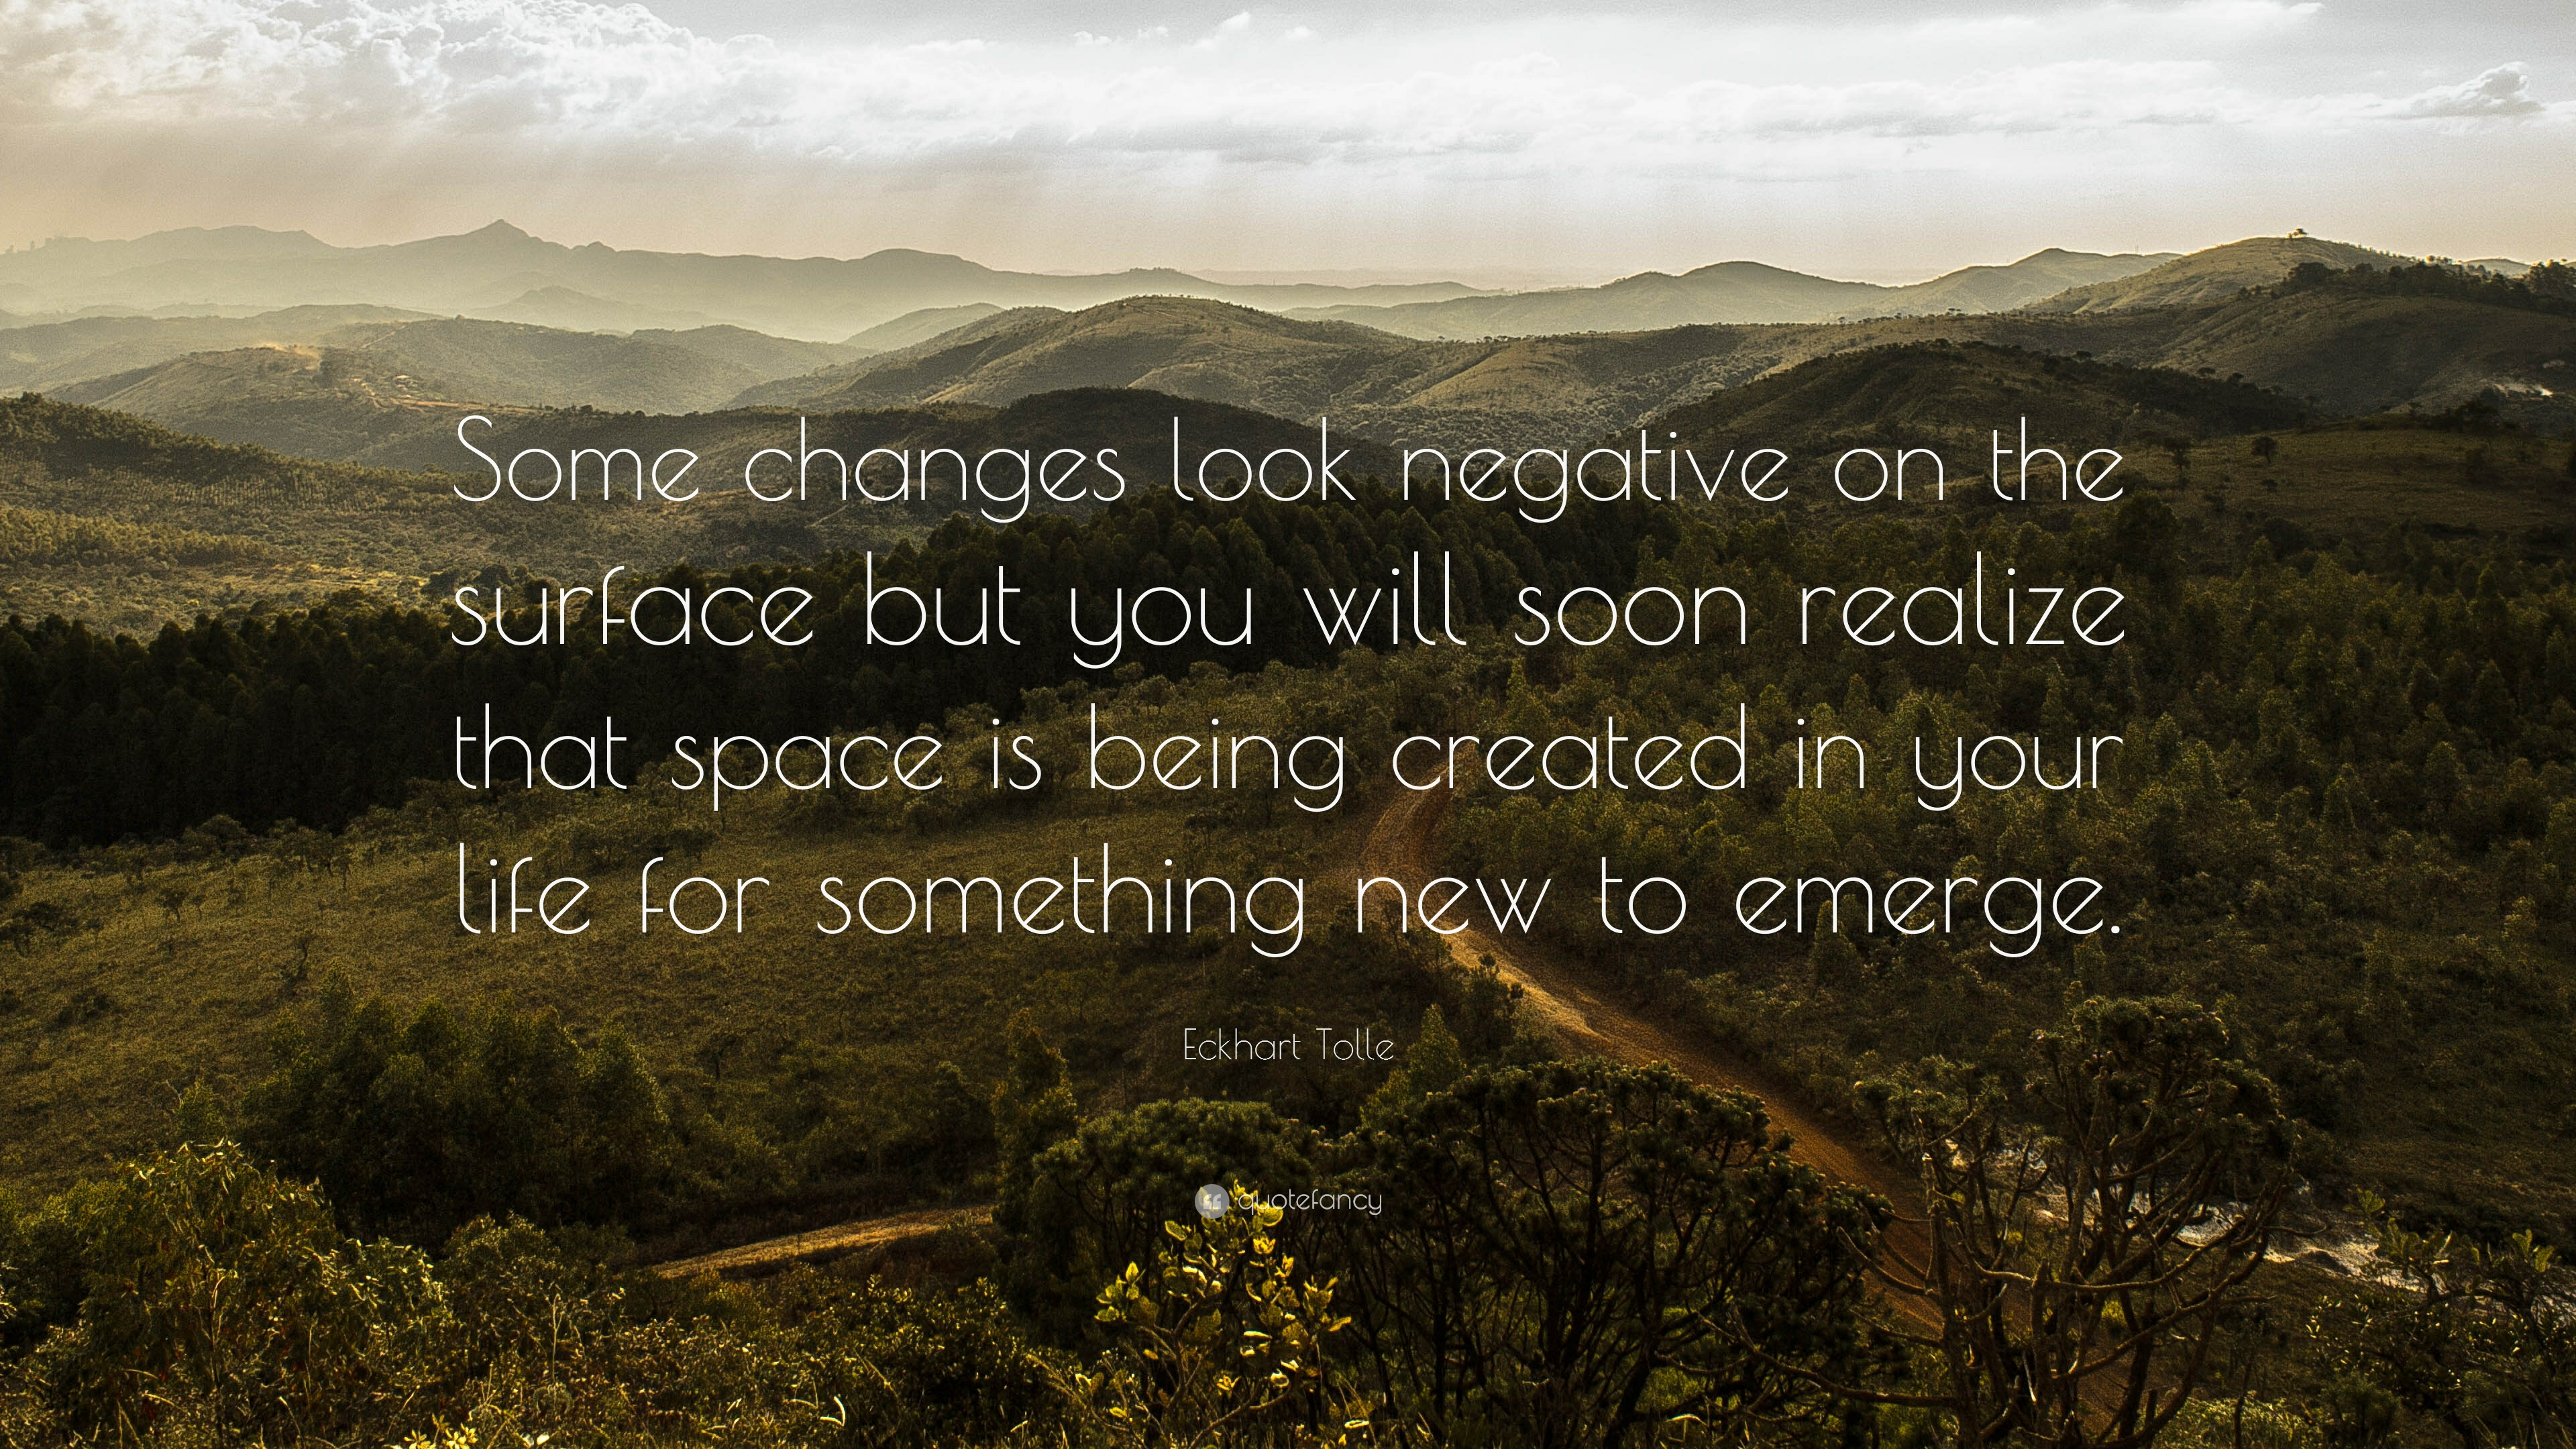 2776-Eckhart-Tolle-Quote-Some-changes-look-negative-on-the-surface-but